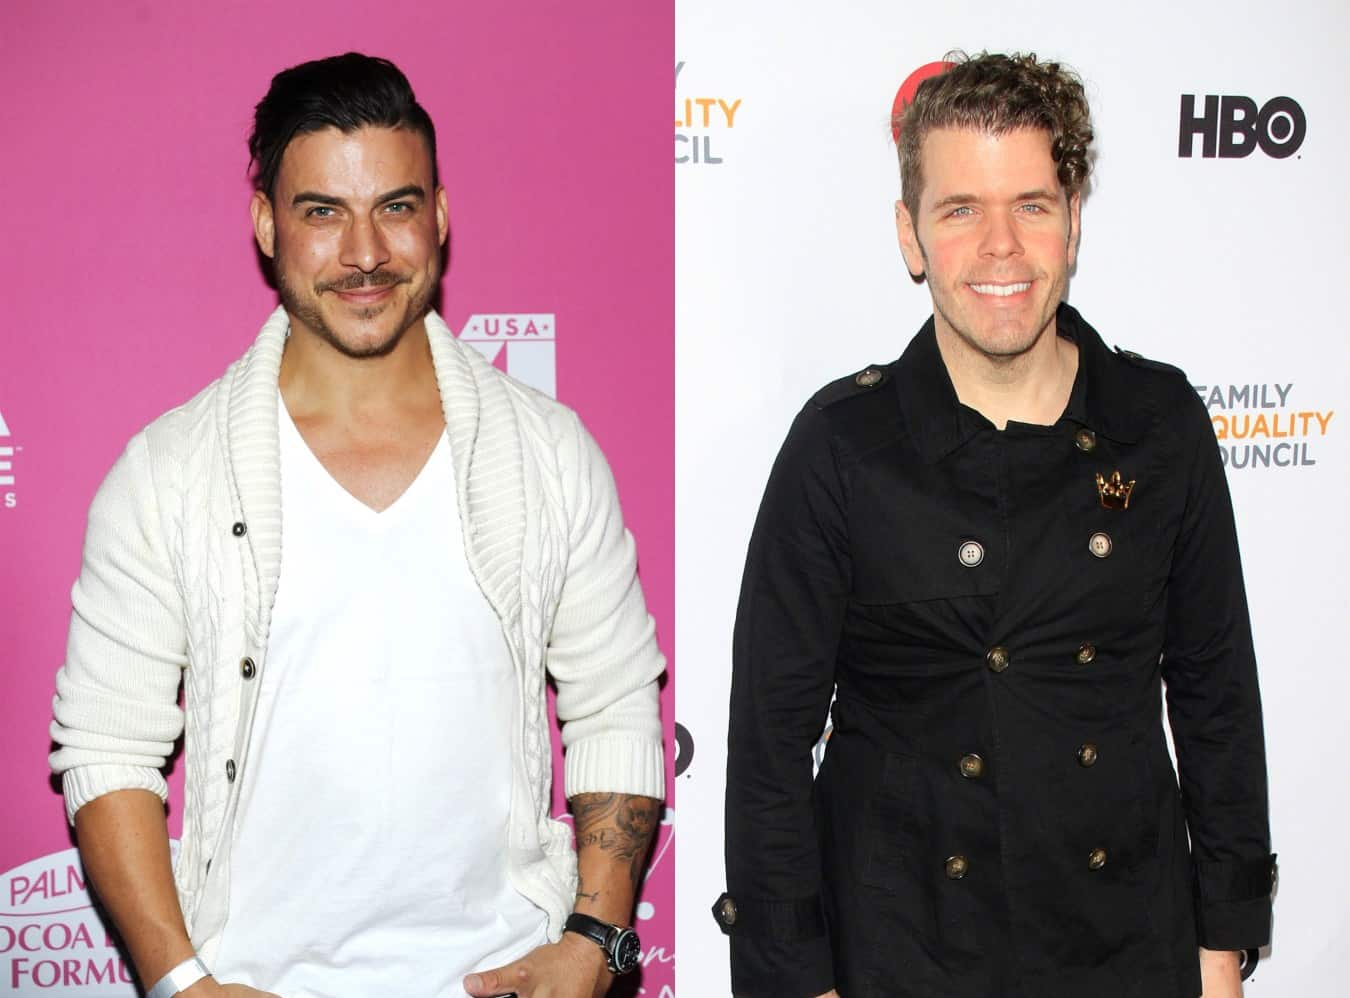 Blogger Perez Hilton Slams Jax Taylor After Vanderpump Rules Star Called Him Out for Making Fun of People's Looks... by Making Fun of His Looks, See How Twitter Reacted